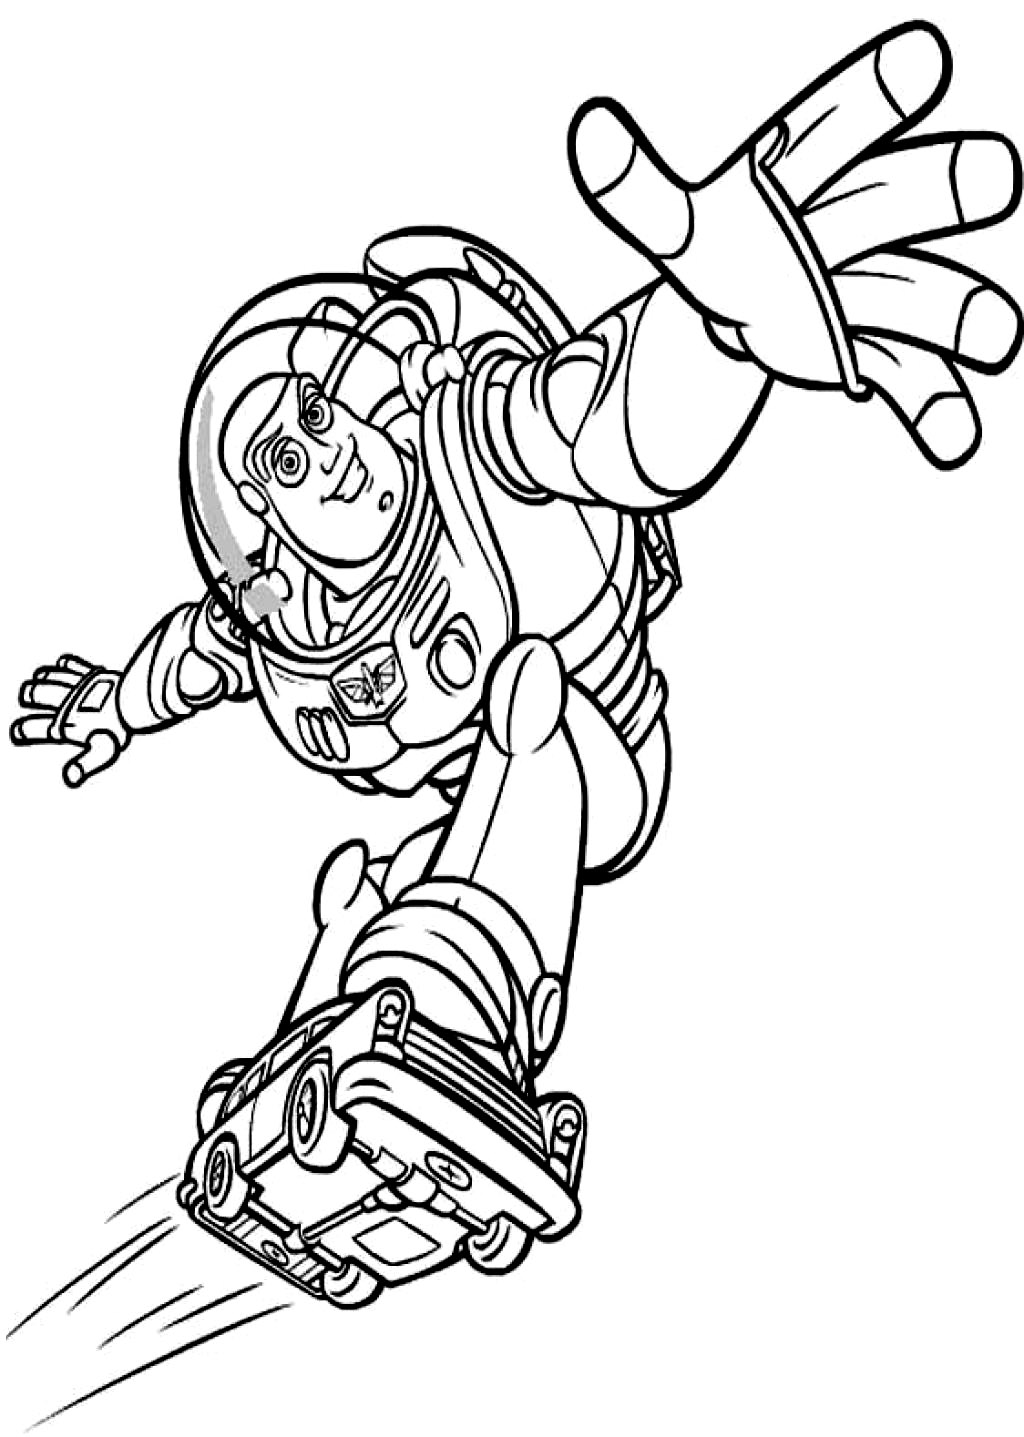 buzz lightyear for coloring free printable buzz lightyear coloring pages for kids for buzz coloring lightyear